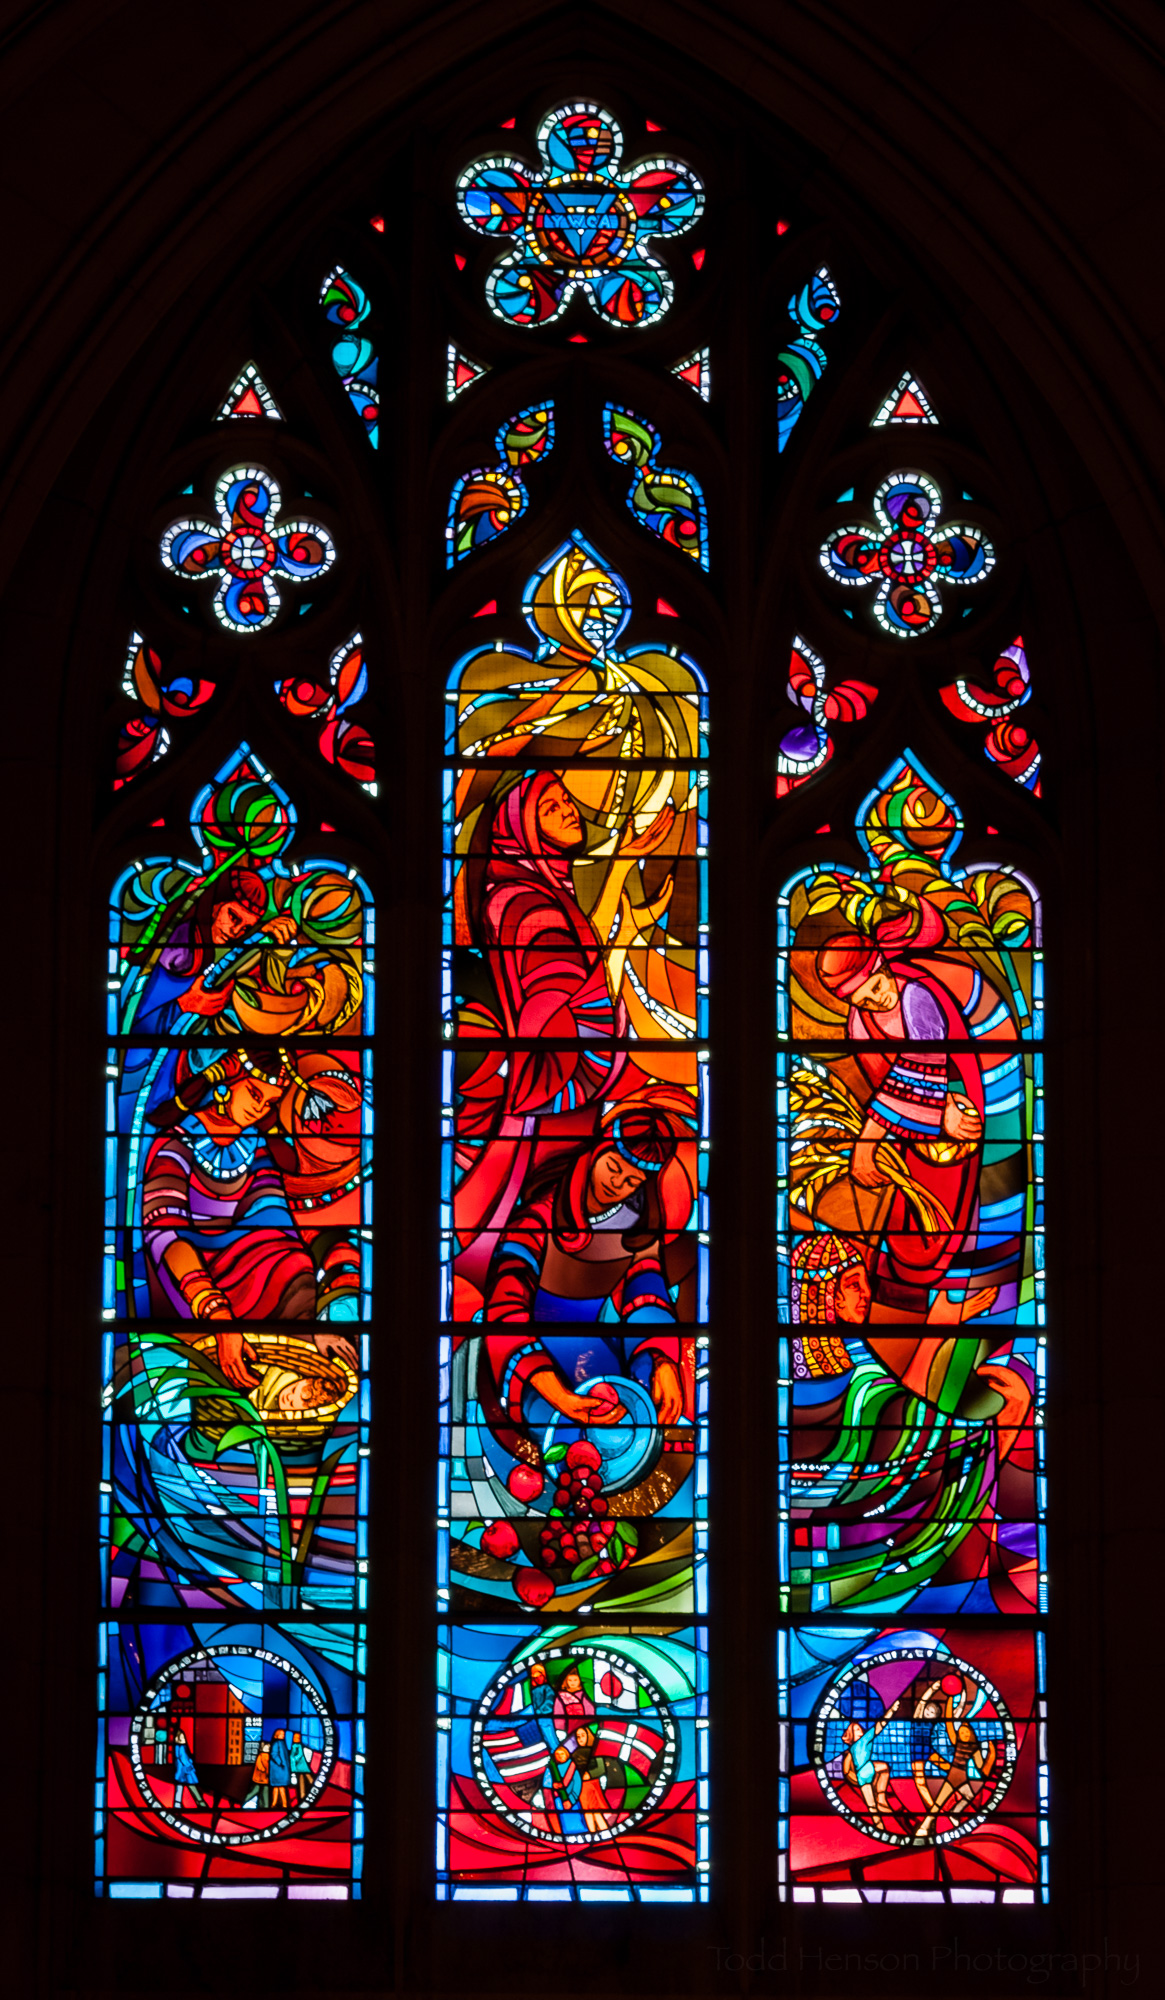 Sampling Of Stained Glass Windows From Washington National